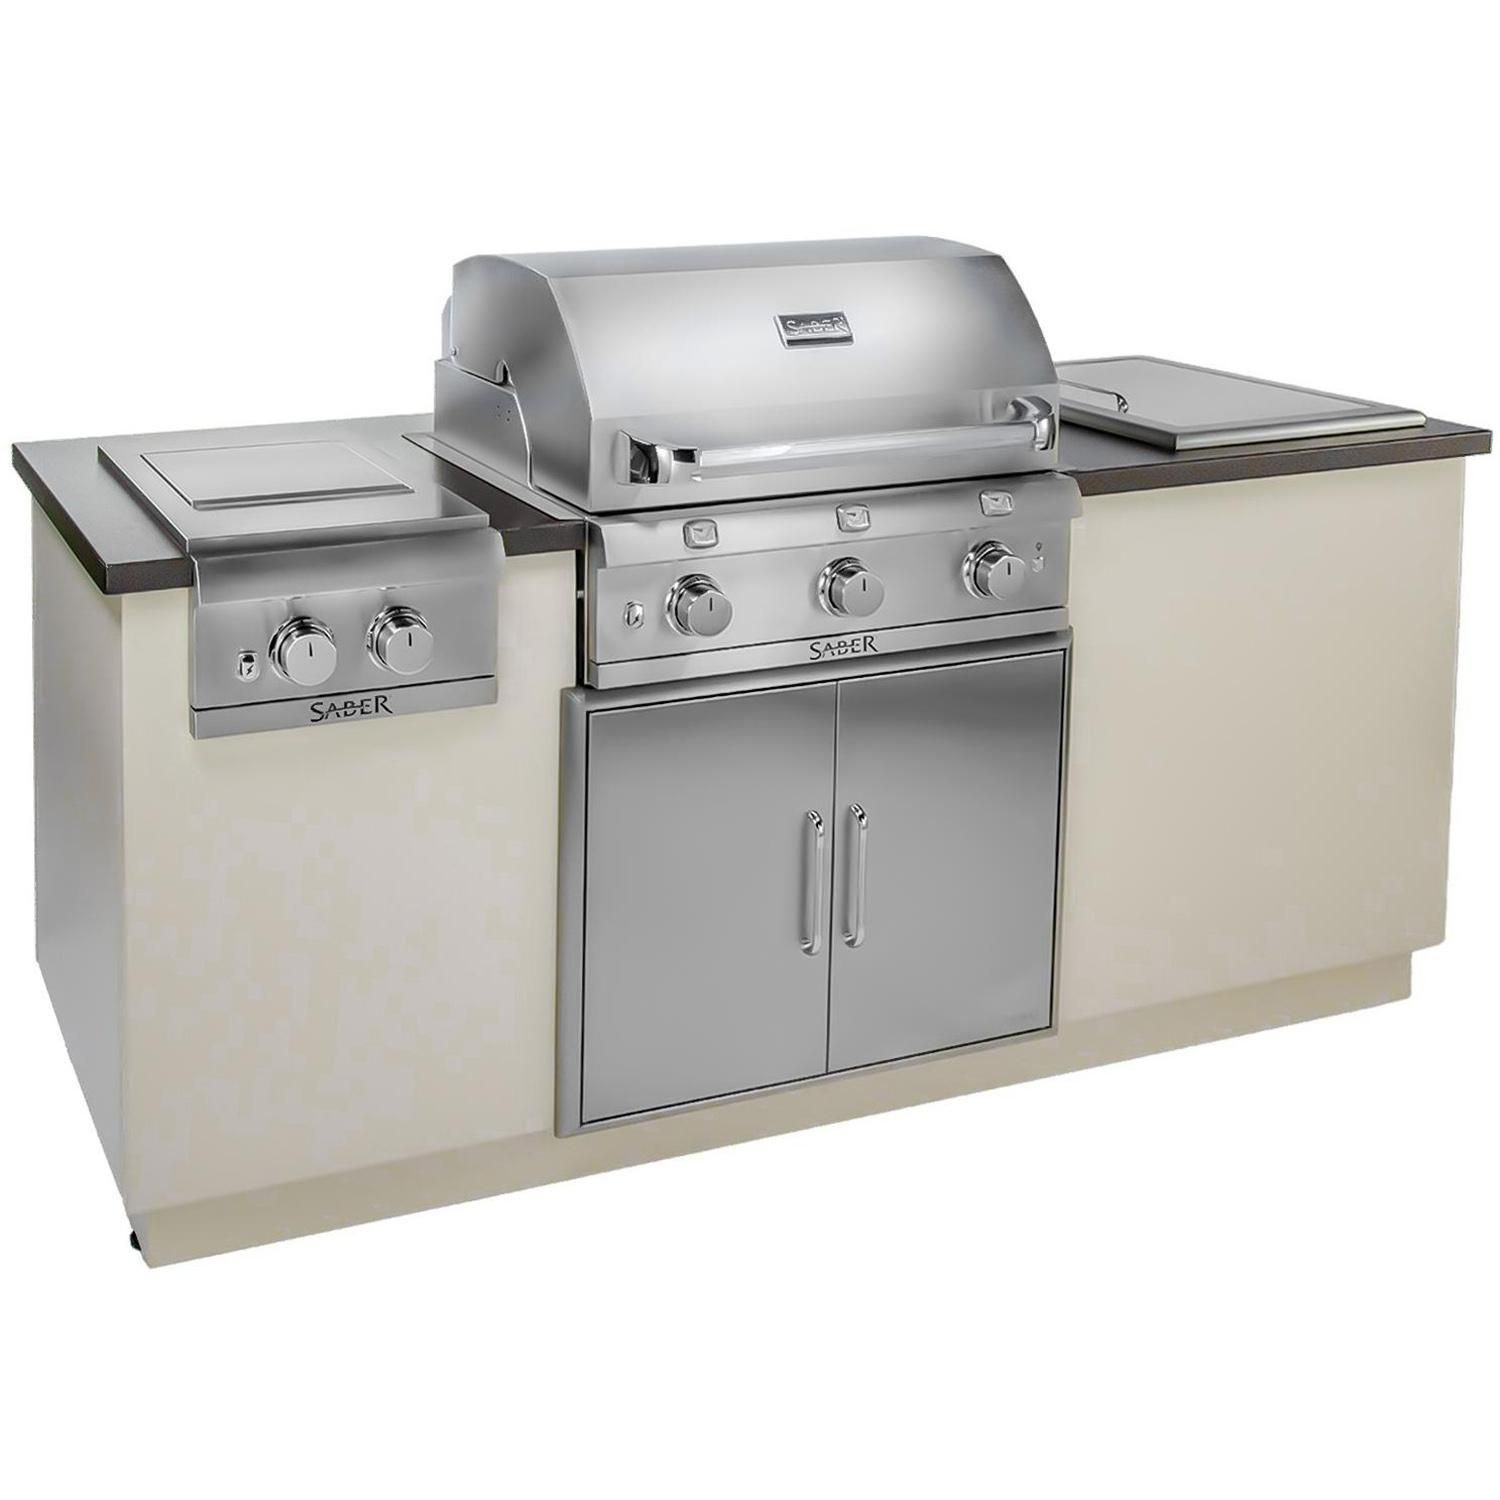 Pin By Little Simplicity On Nashville Mosiac Axis Outdoor Kitchen Propane Grill Outdoor Kitchen Appliances